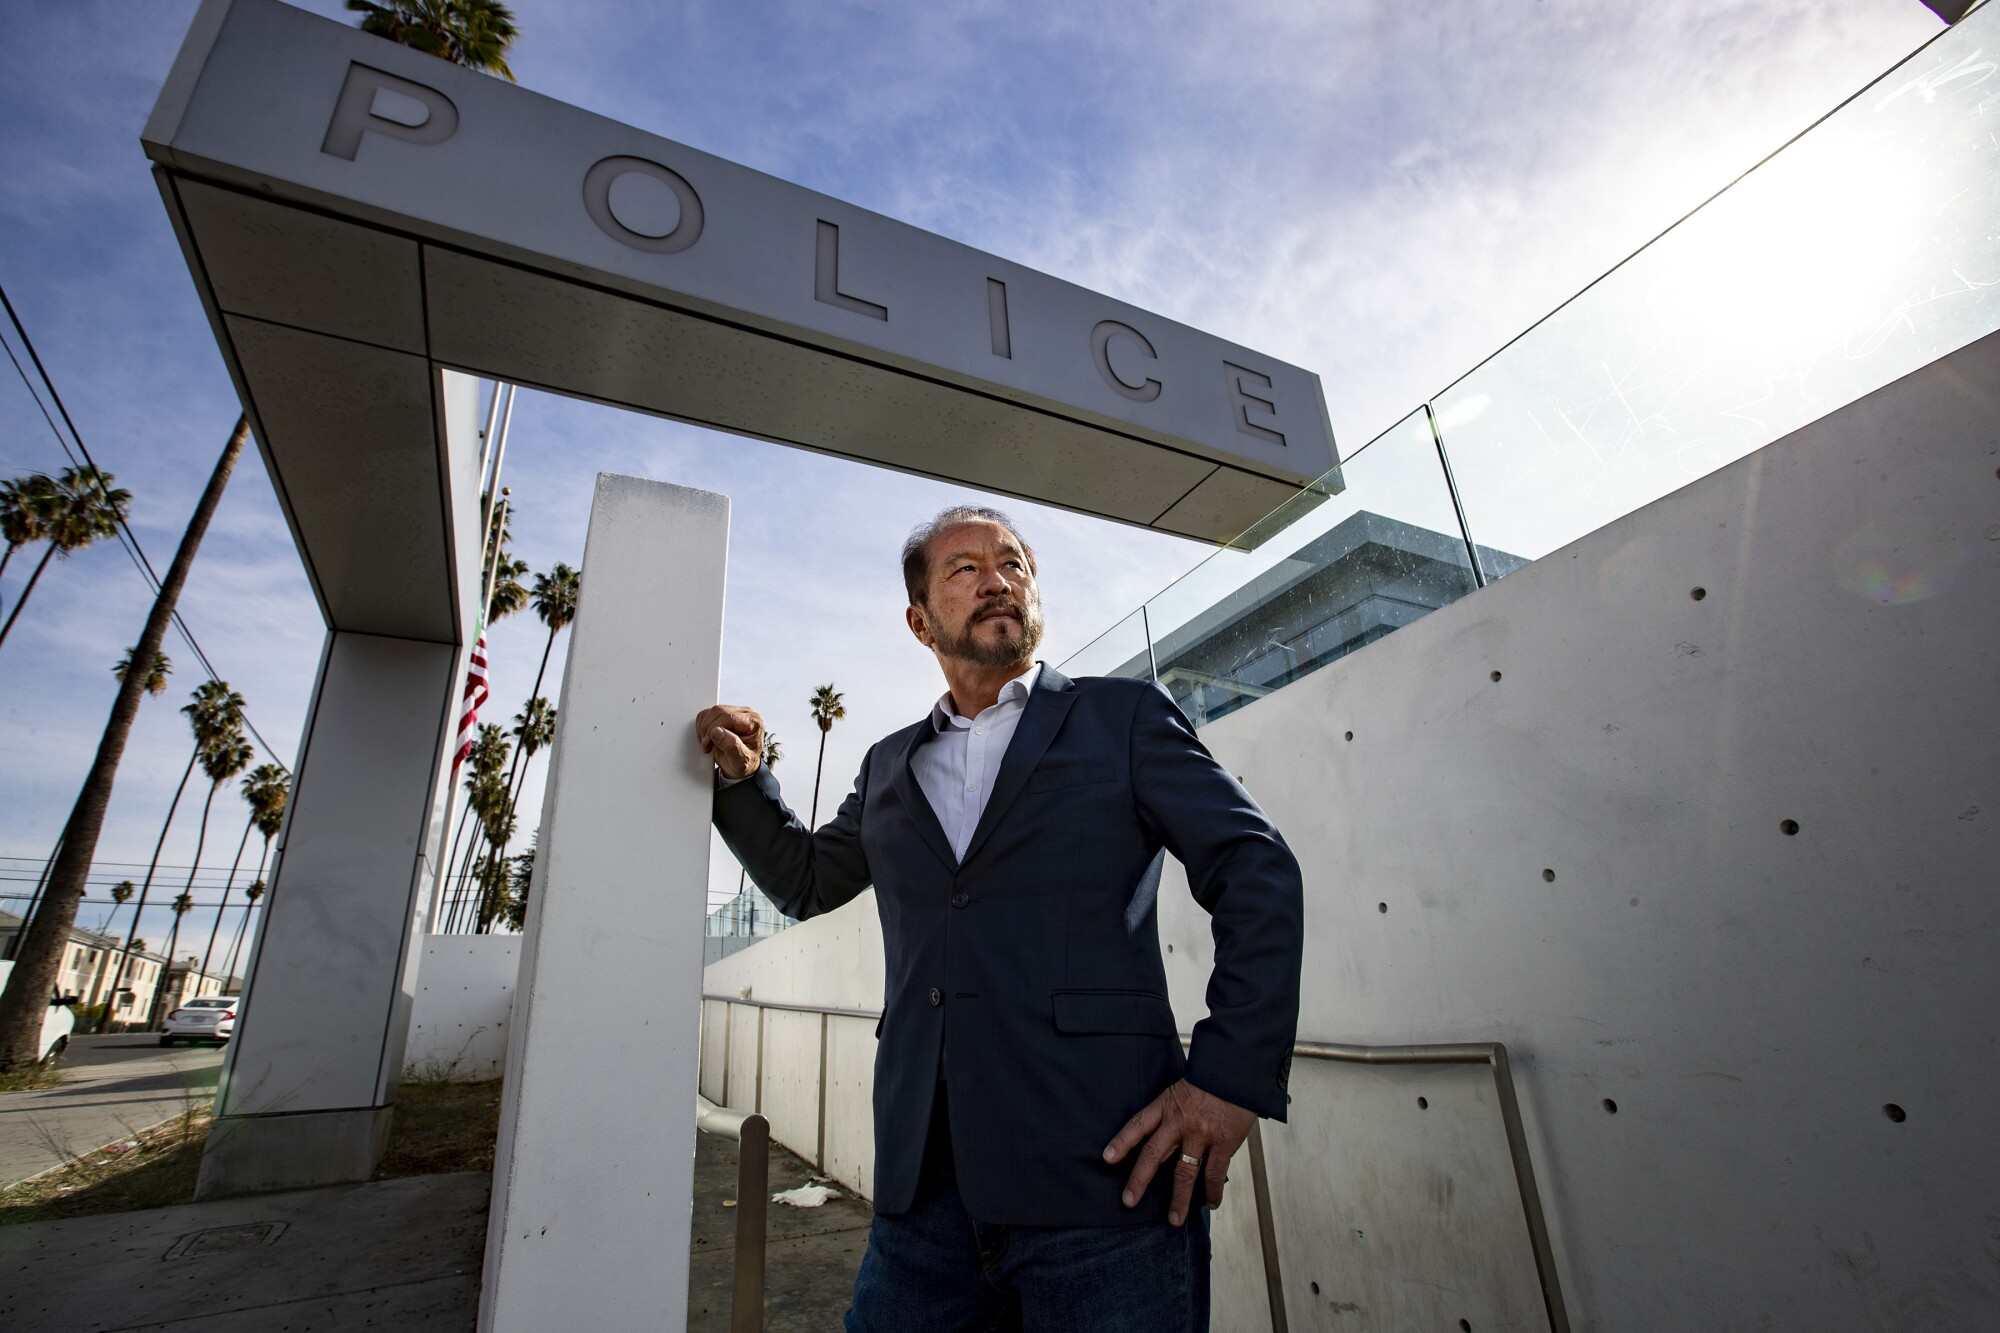 Chang Lee stands in front of the LAPD Olympic station.